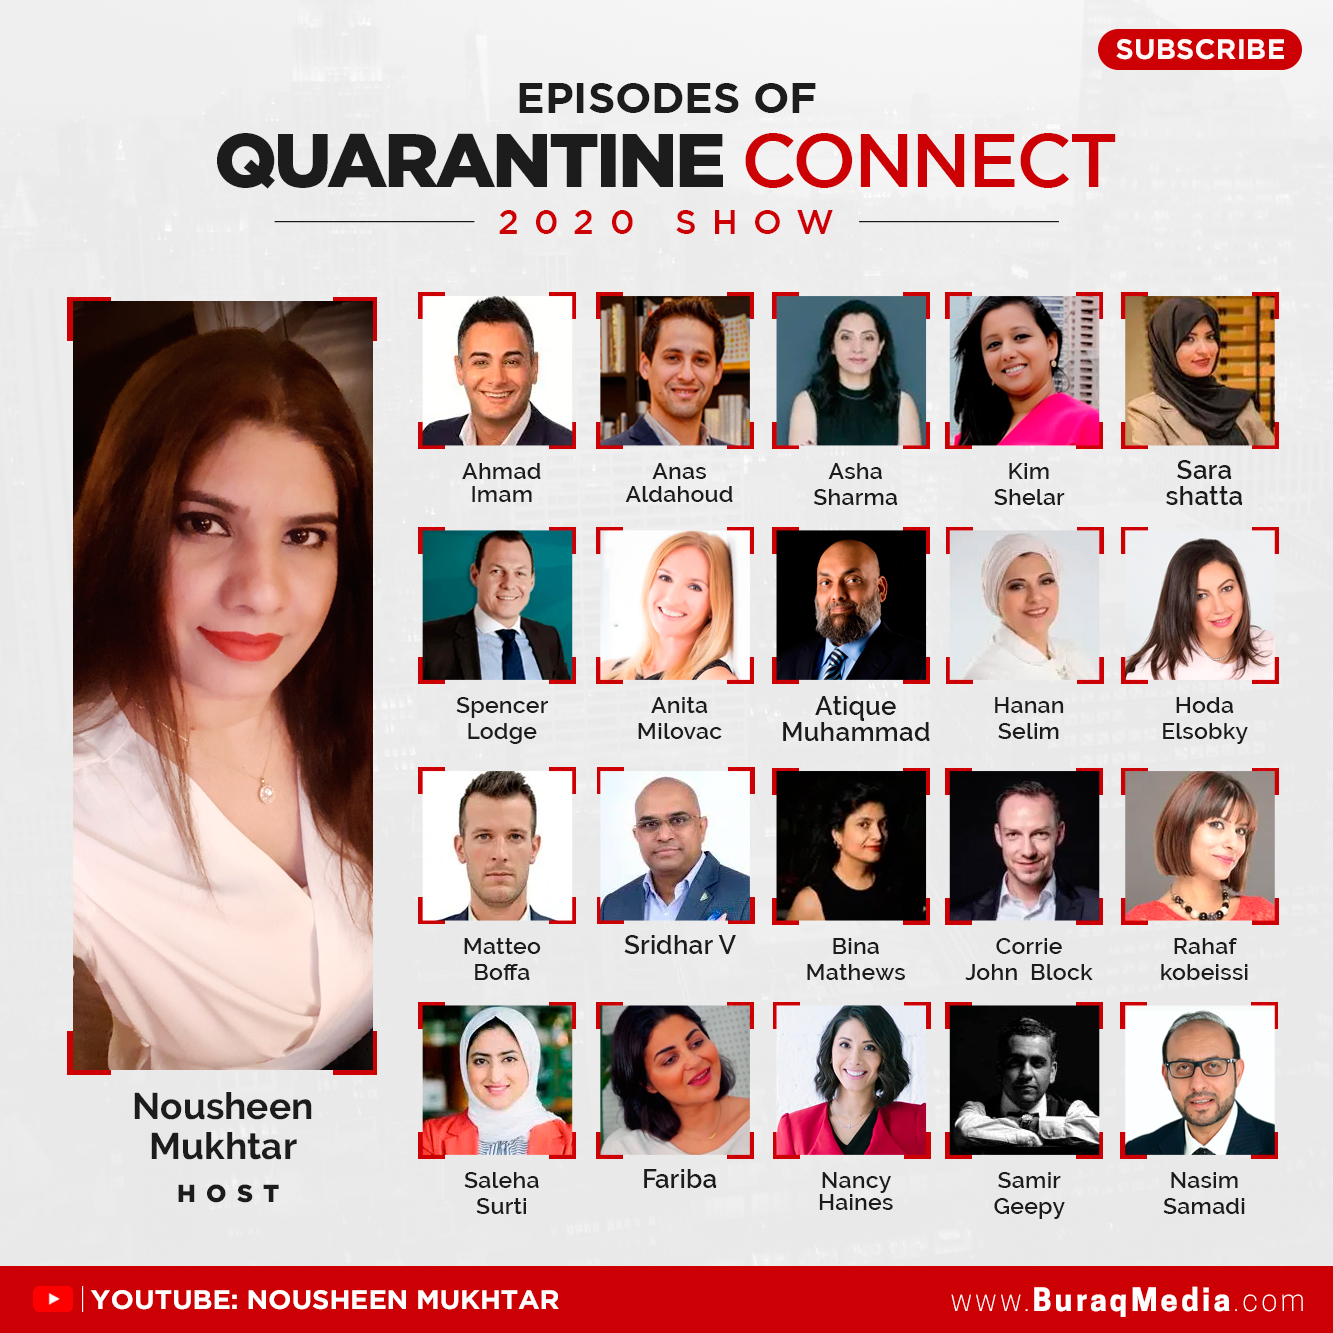 Quarantine connect 2020 - How To Find The Right Job During Covid-19